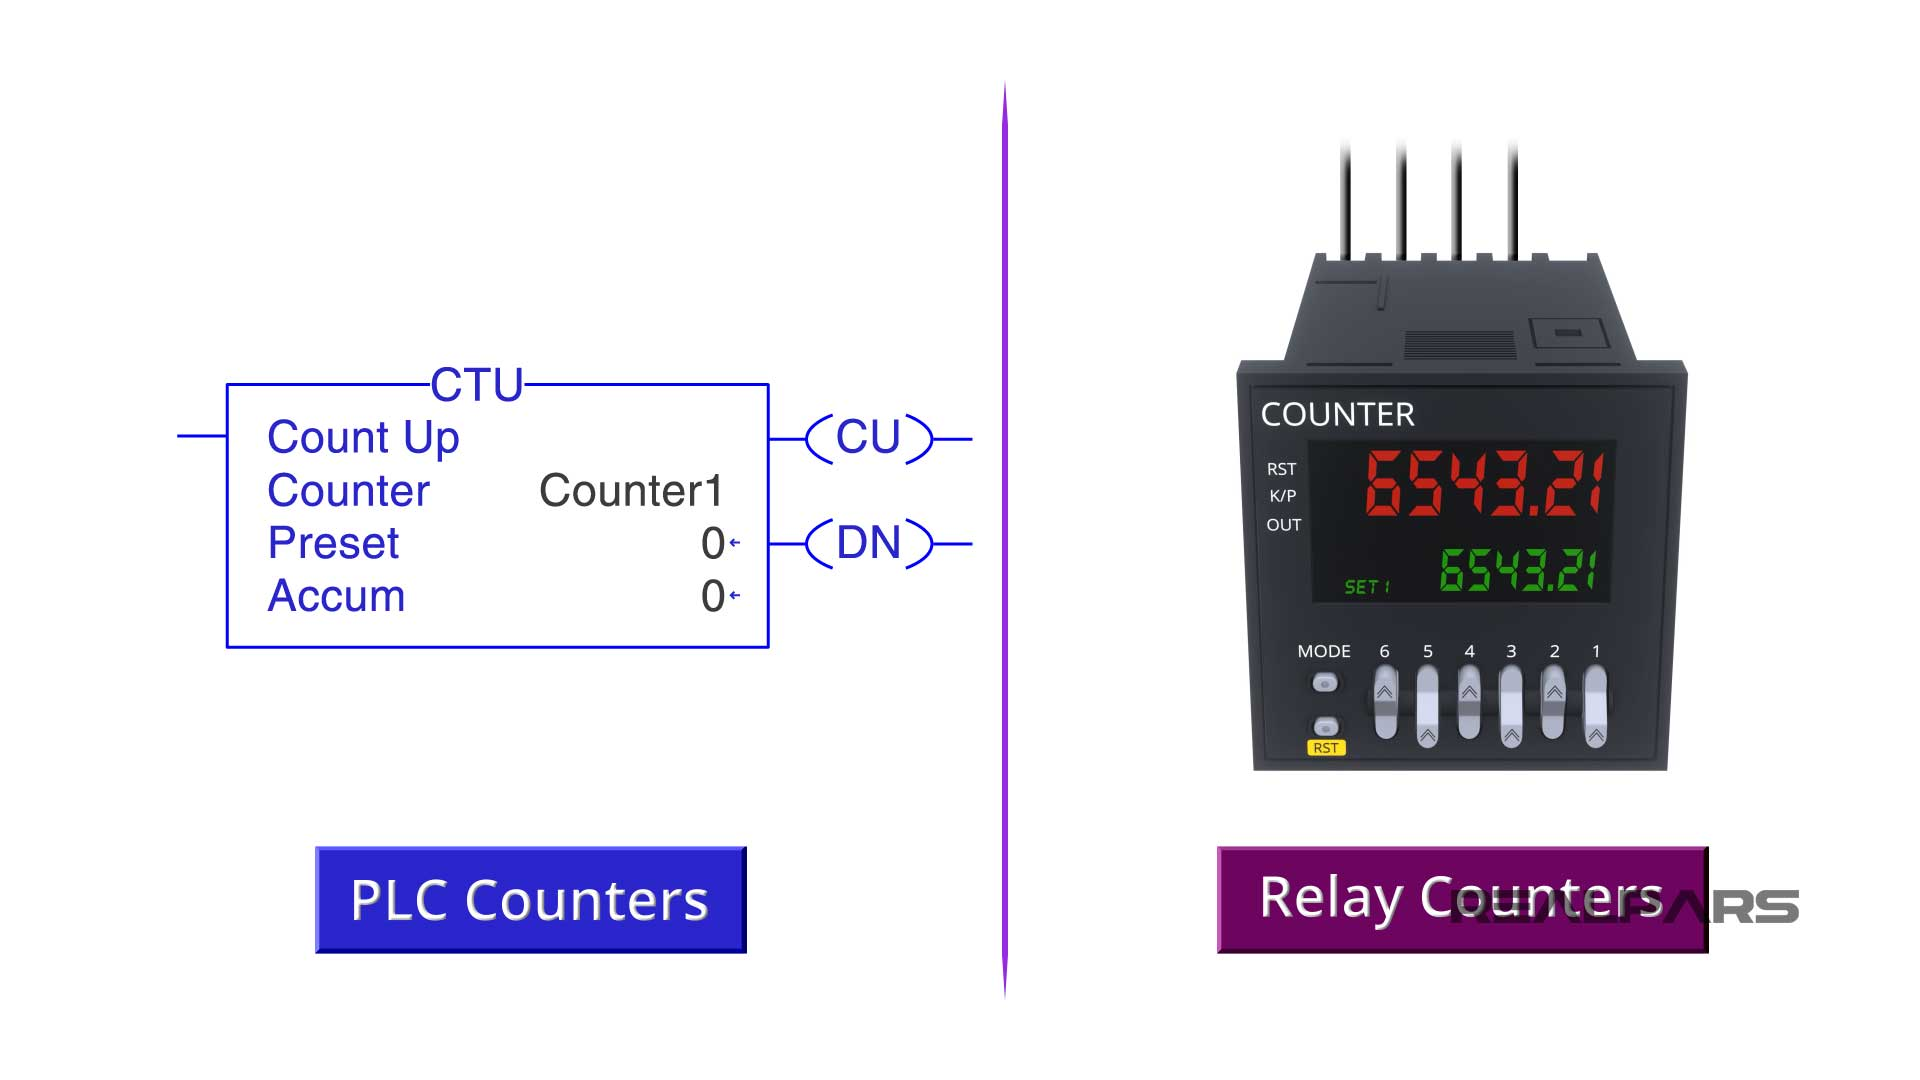 PLC Counters.